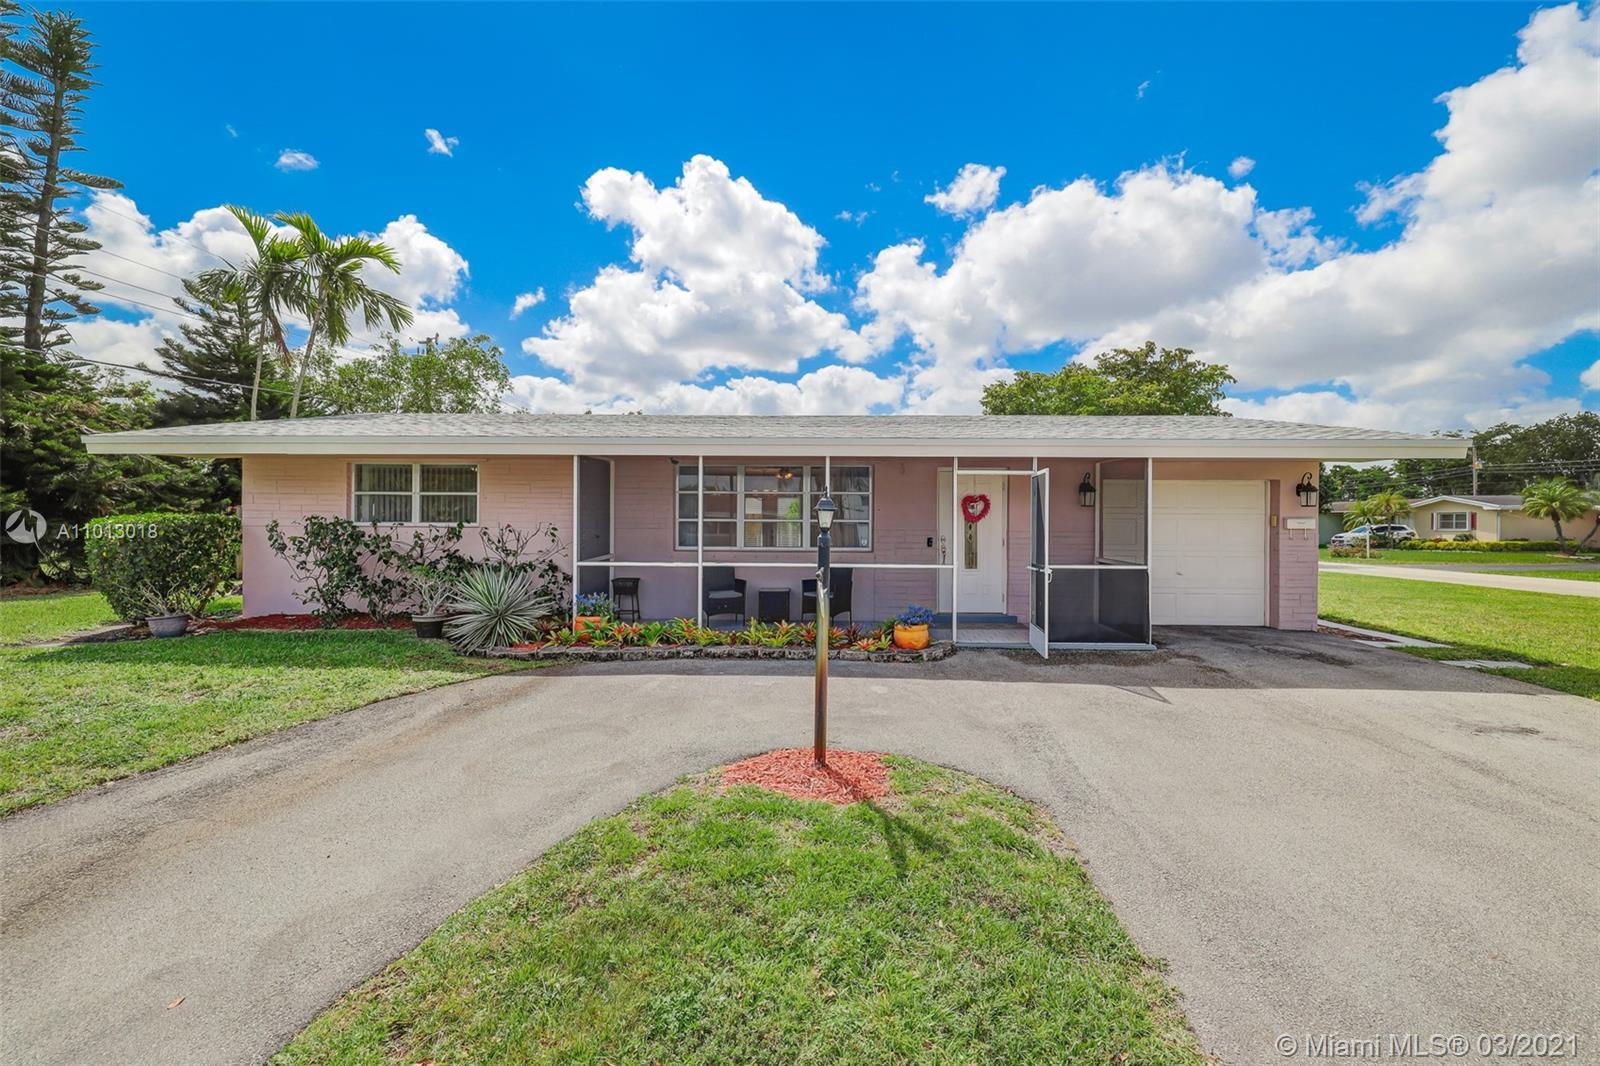 Boulevard Heights - 7920 NW 16th St, Pembroke Pines, FL 33024